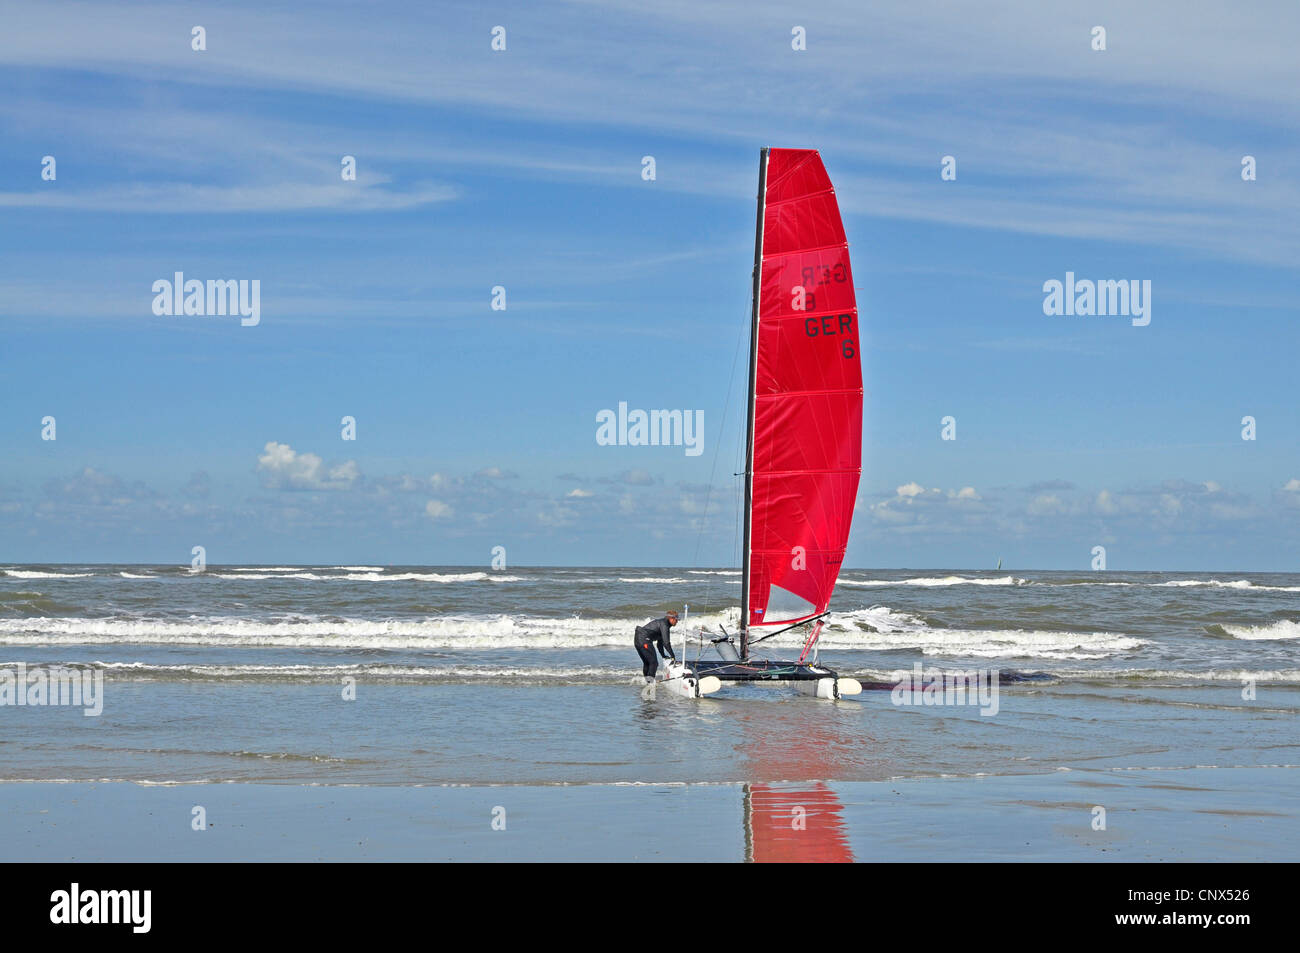 person launching a catamaran, Germany, Lower Saxony, East Frisia Stock Photo